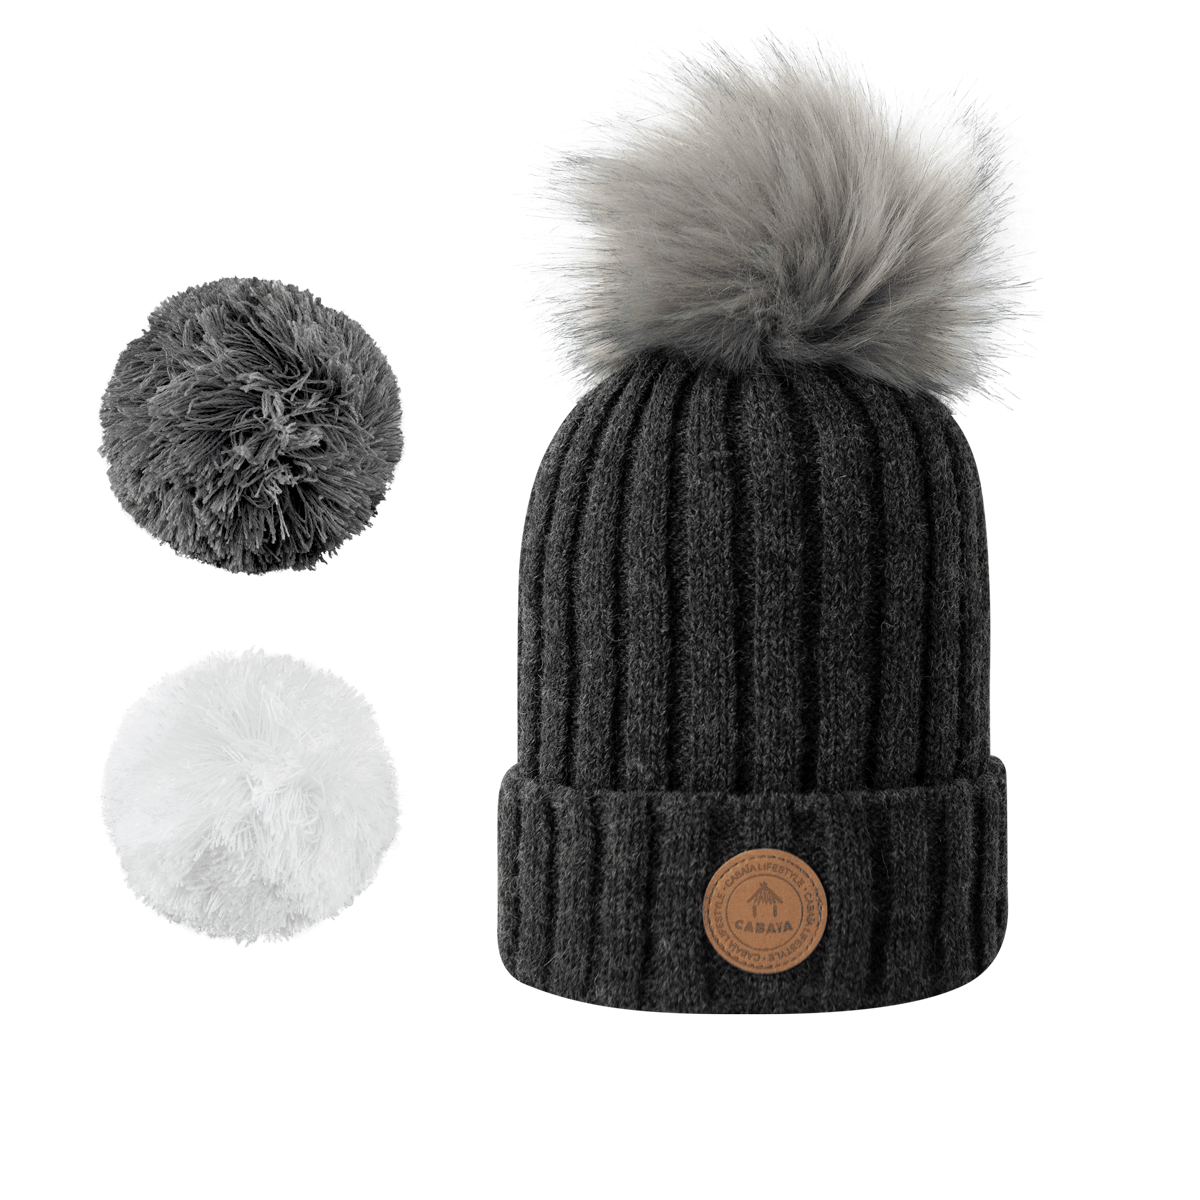 1 bonnet + 3 pompons, Kir Royal Grey Polaire, Cabaïa